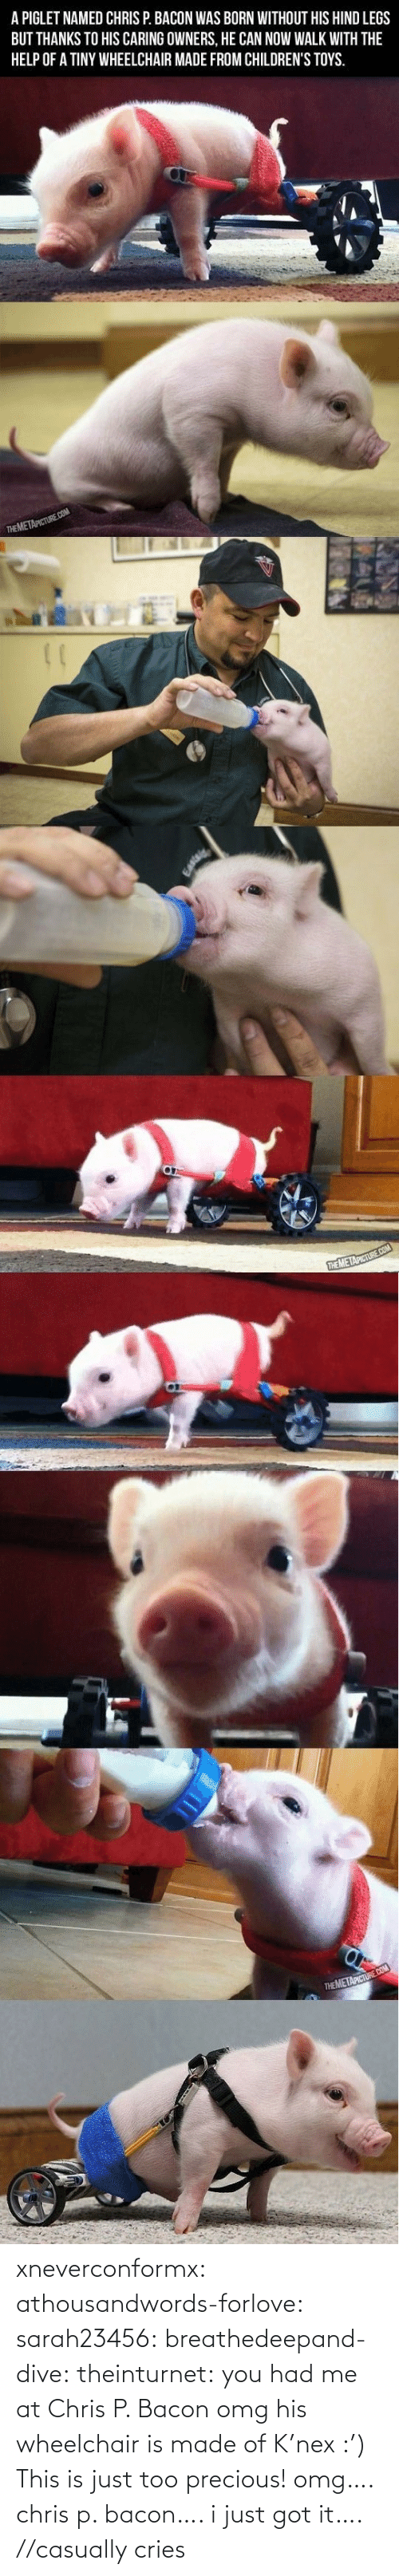 Hind Legs: A PIGLET NAMED CHRIS P. BACON WAS BORN WITHOUT HIS HIND LEGS  BUT THANKS TO HIS CARING OWNERS, HE CAN NOW WALK WITH THE  HELP OF A TINY WHEELCHAIR MADE FROM CHILDREN'S TOYS.  THE METAPICTURE.COM   THEMETAPICTURE.COM  MAU   THEMETAPICTURE COM xneverconformx:  athousandwords-forlove:  sarah23456:  breathedeepand-dive:  theinturnet:  you had me at Chris P. Bacon  omg his wheelchair is made of K'nex :')  This is just too precious!  omg…. chris p. bacon…. i just got it….  //casually cries